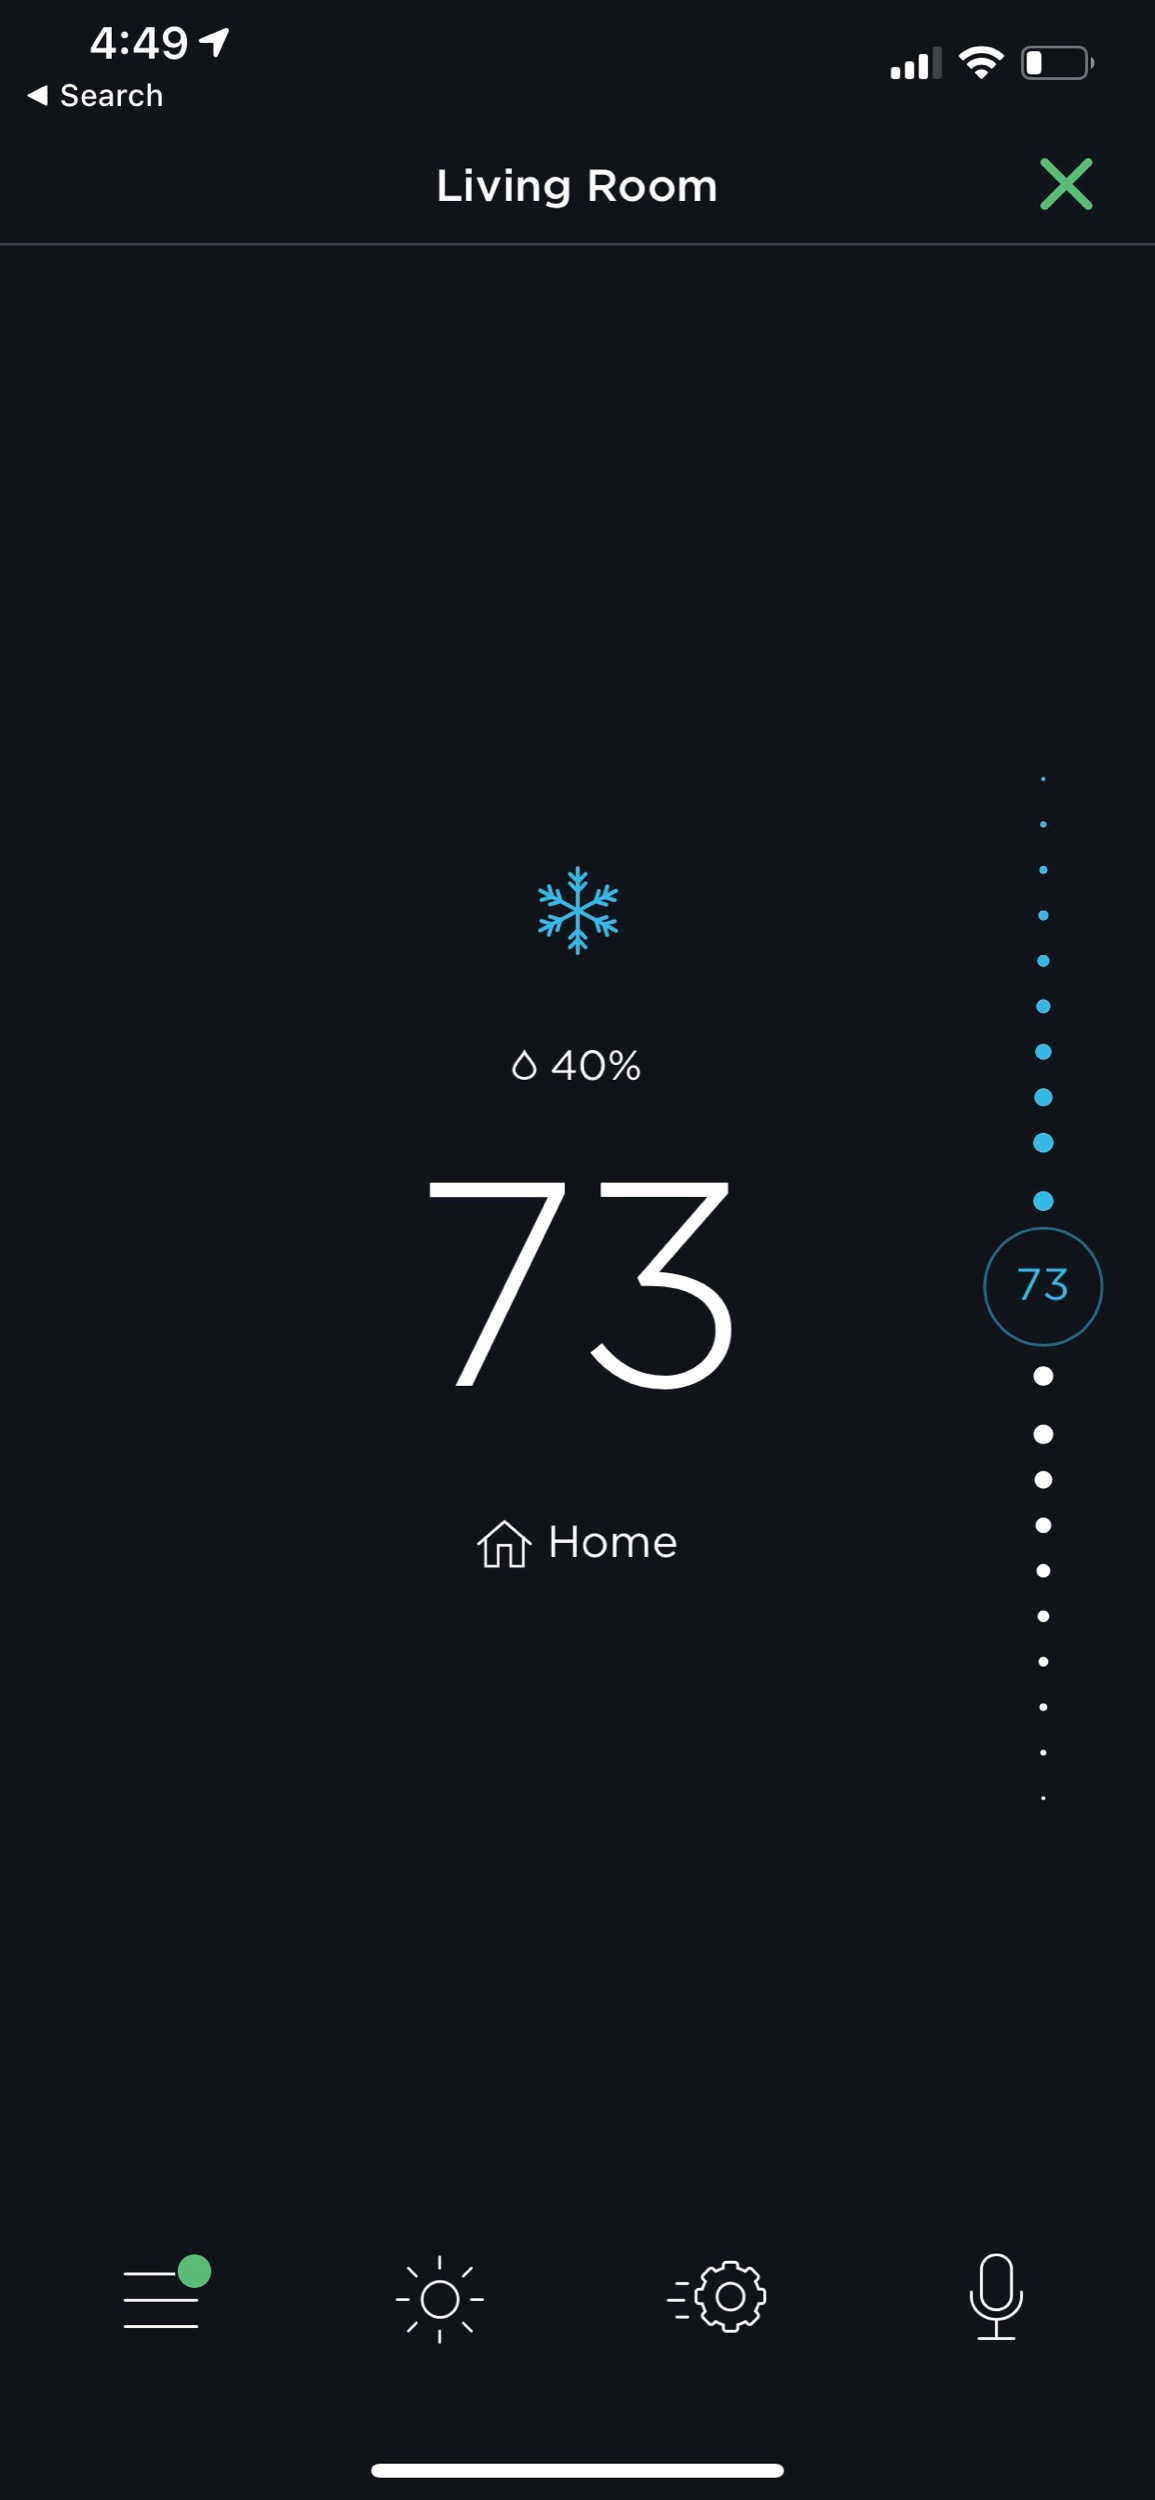 Once you tap on a thermostat, you get more detailed controls.